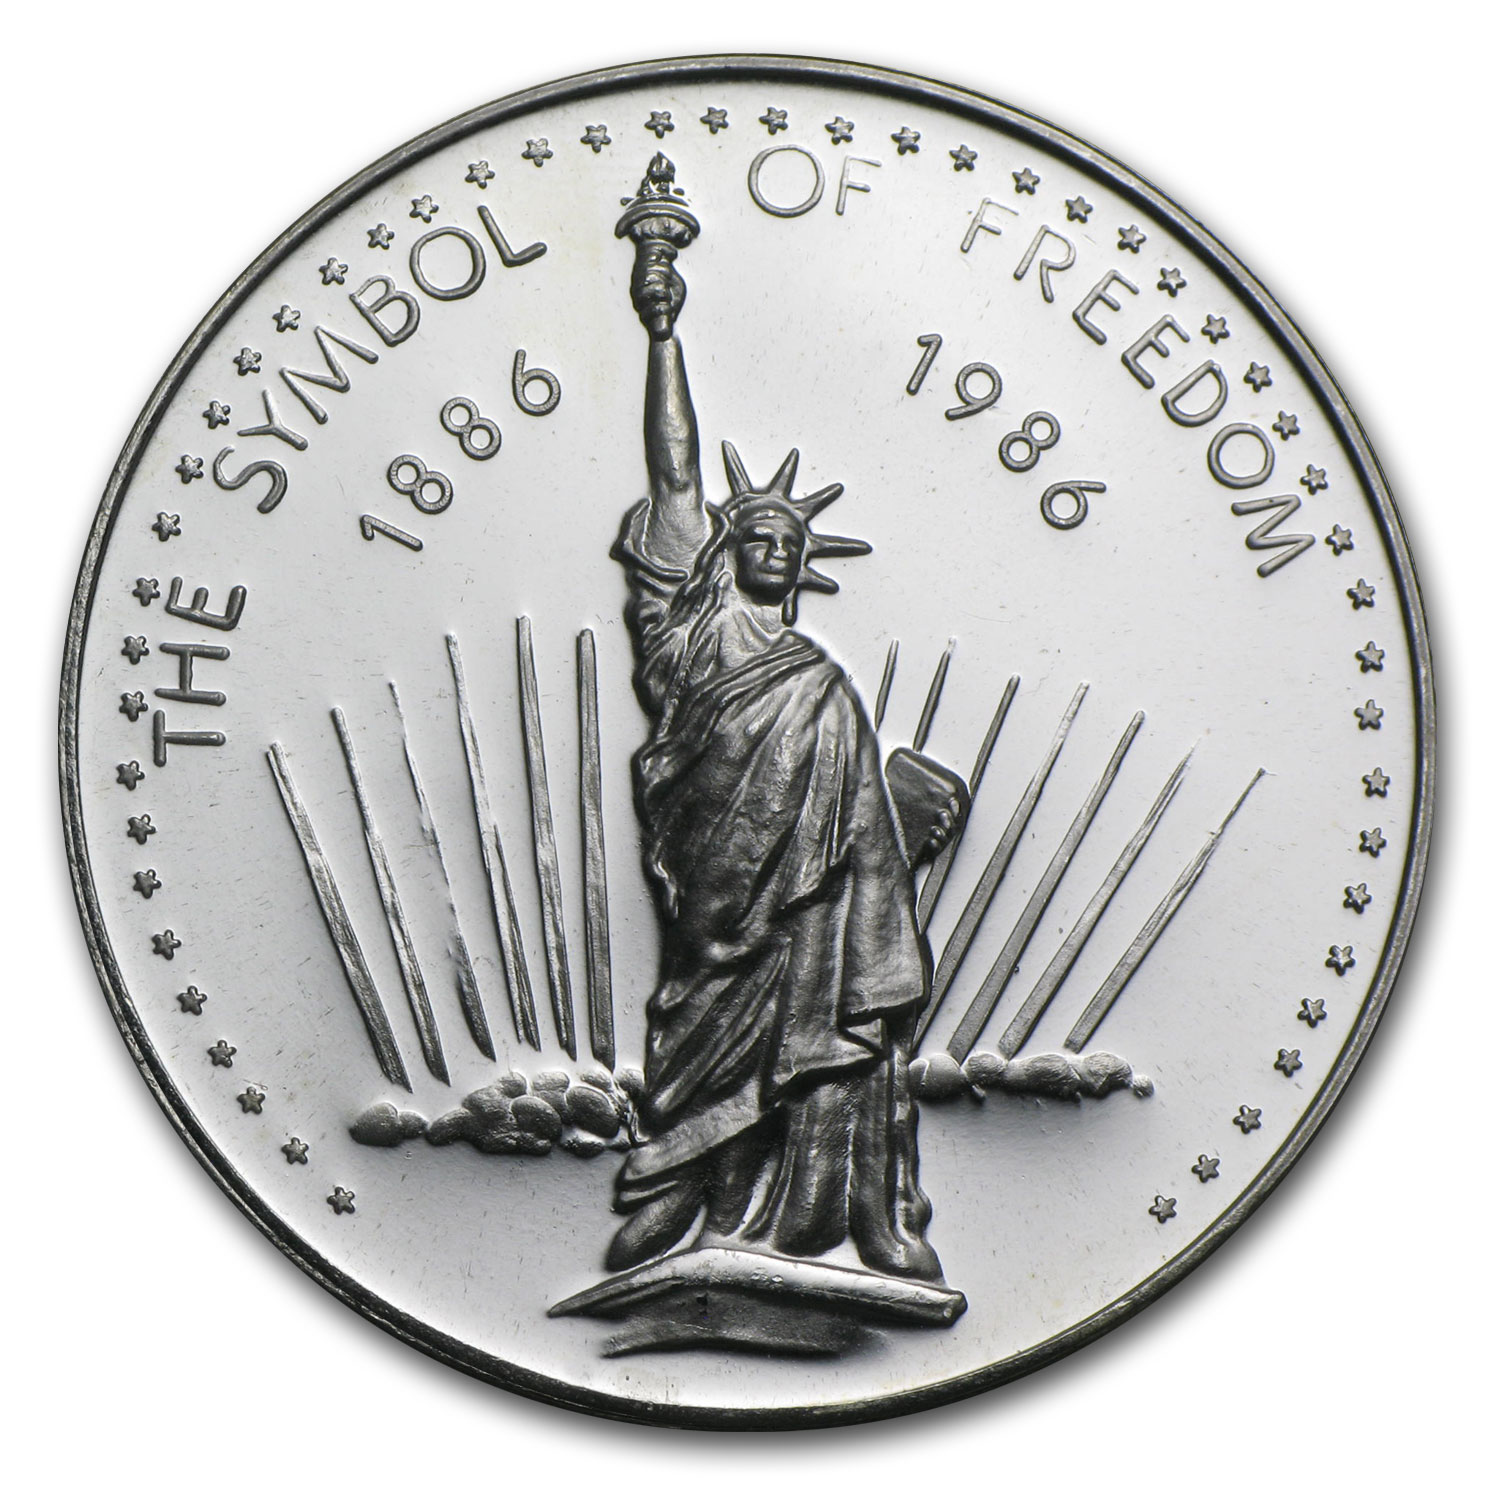 1 oz Silver Rounds - Statue of Liberty (Symbol of Freedom)